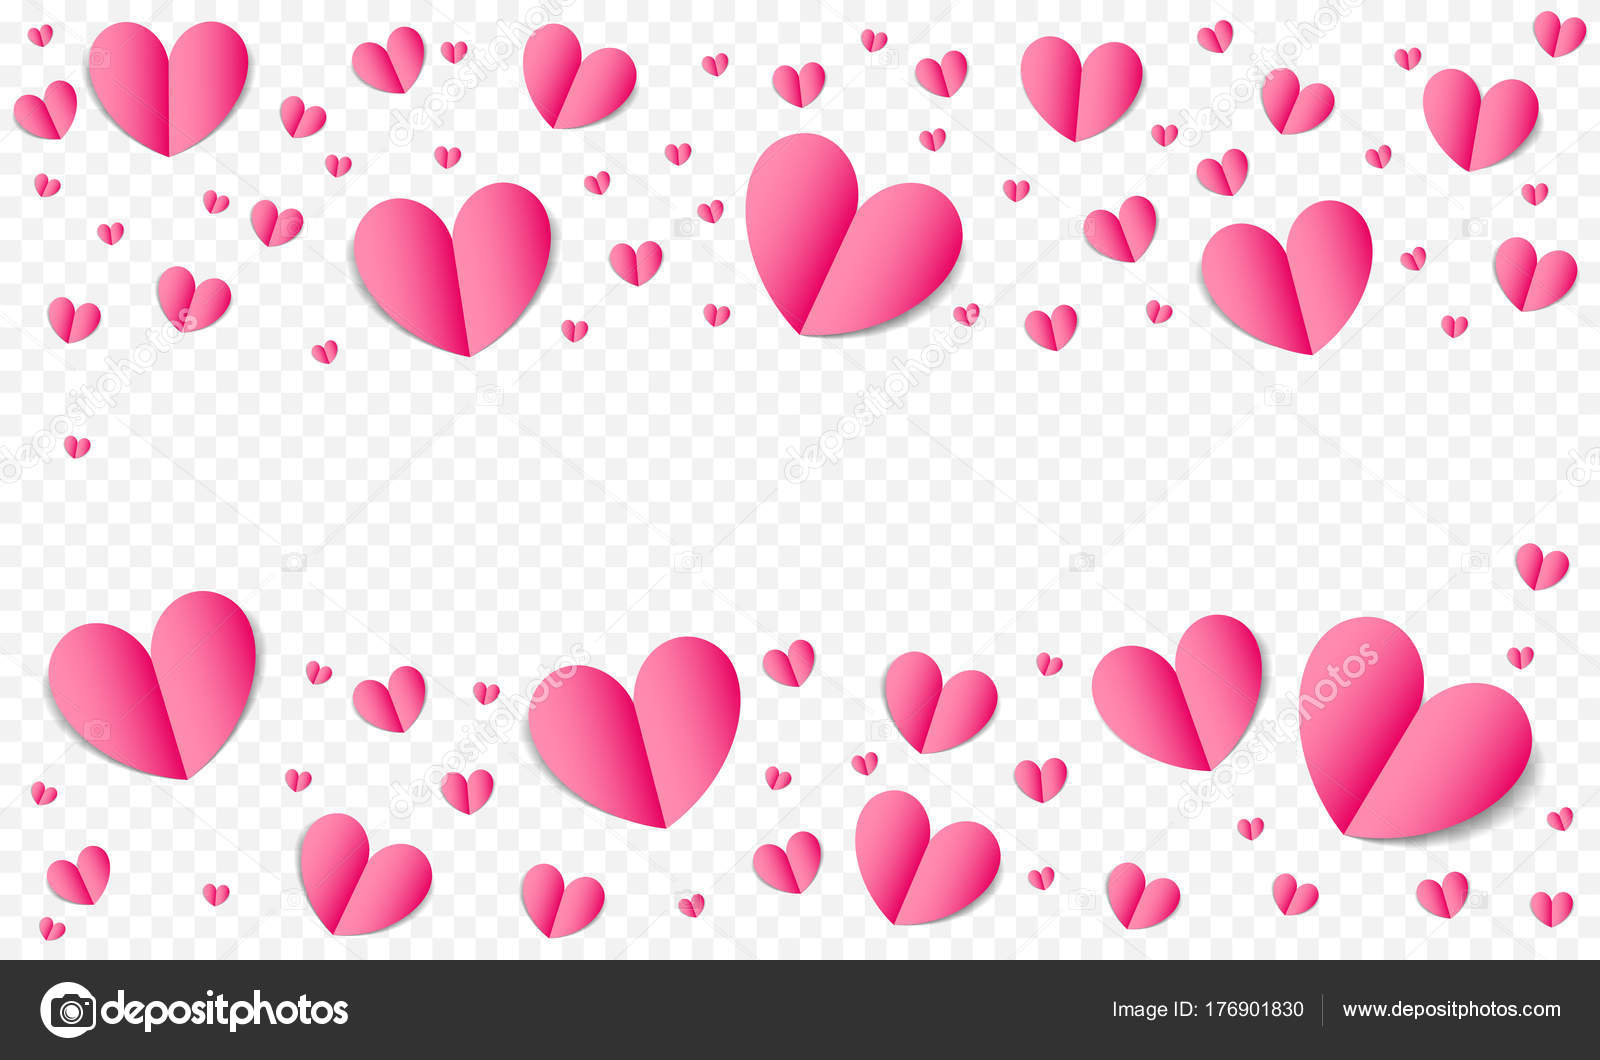 Hearts Pattern Background For Valentines Day Save The Date Wedding